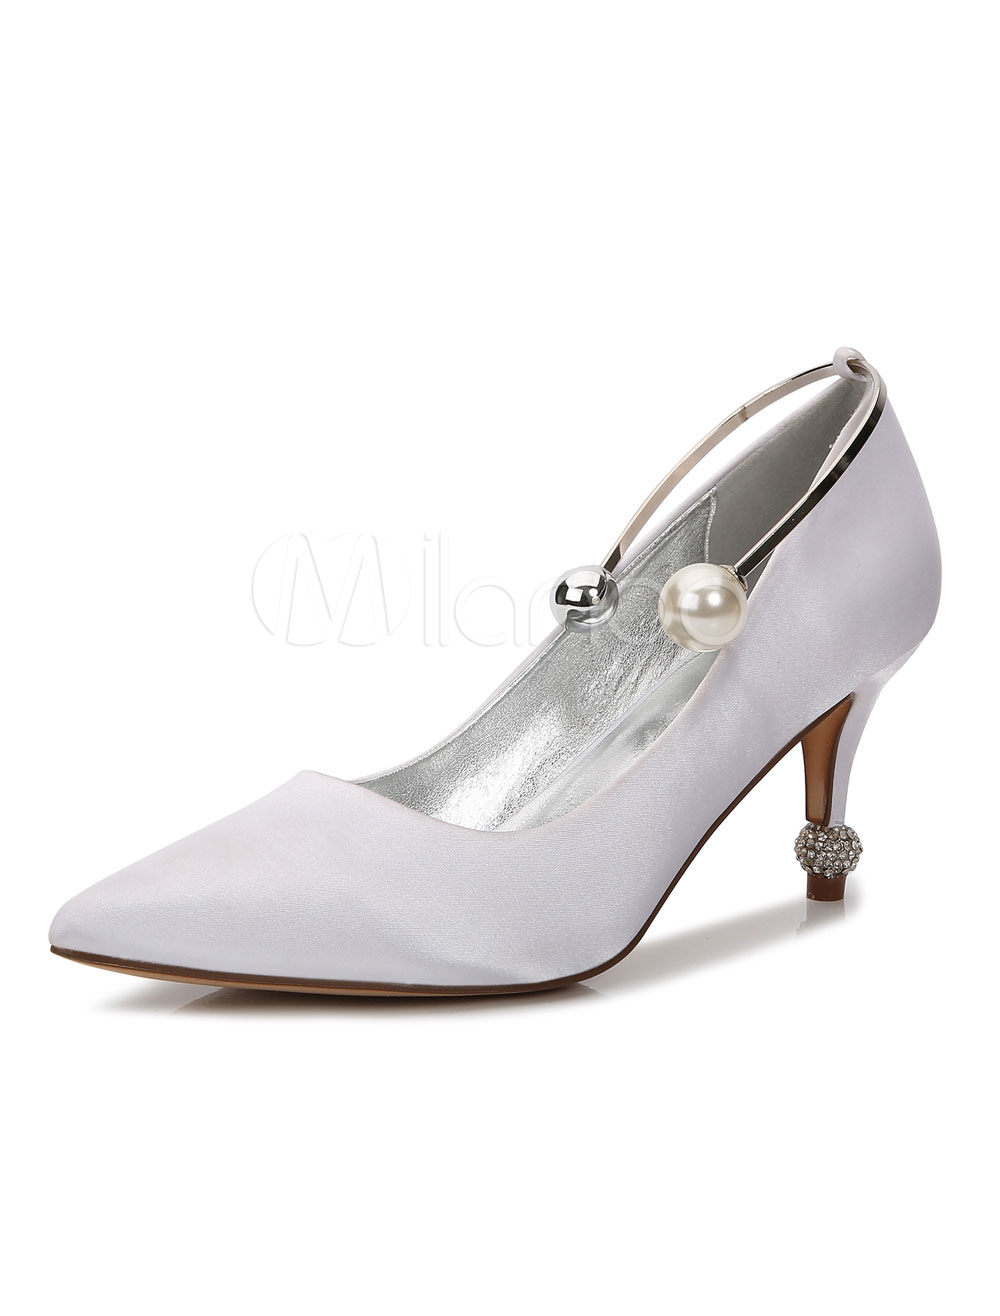 White Wedding Shoes Satin Pointed Toe Pearls Detail Bridal Shoes Wedding Guest Shoes